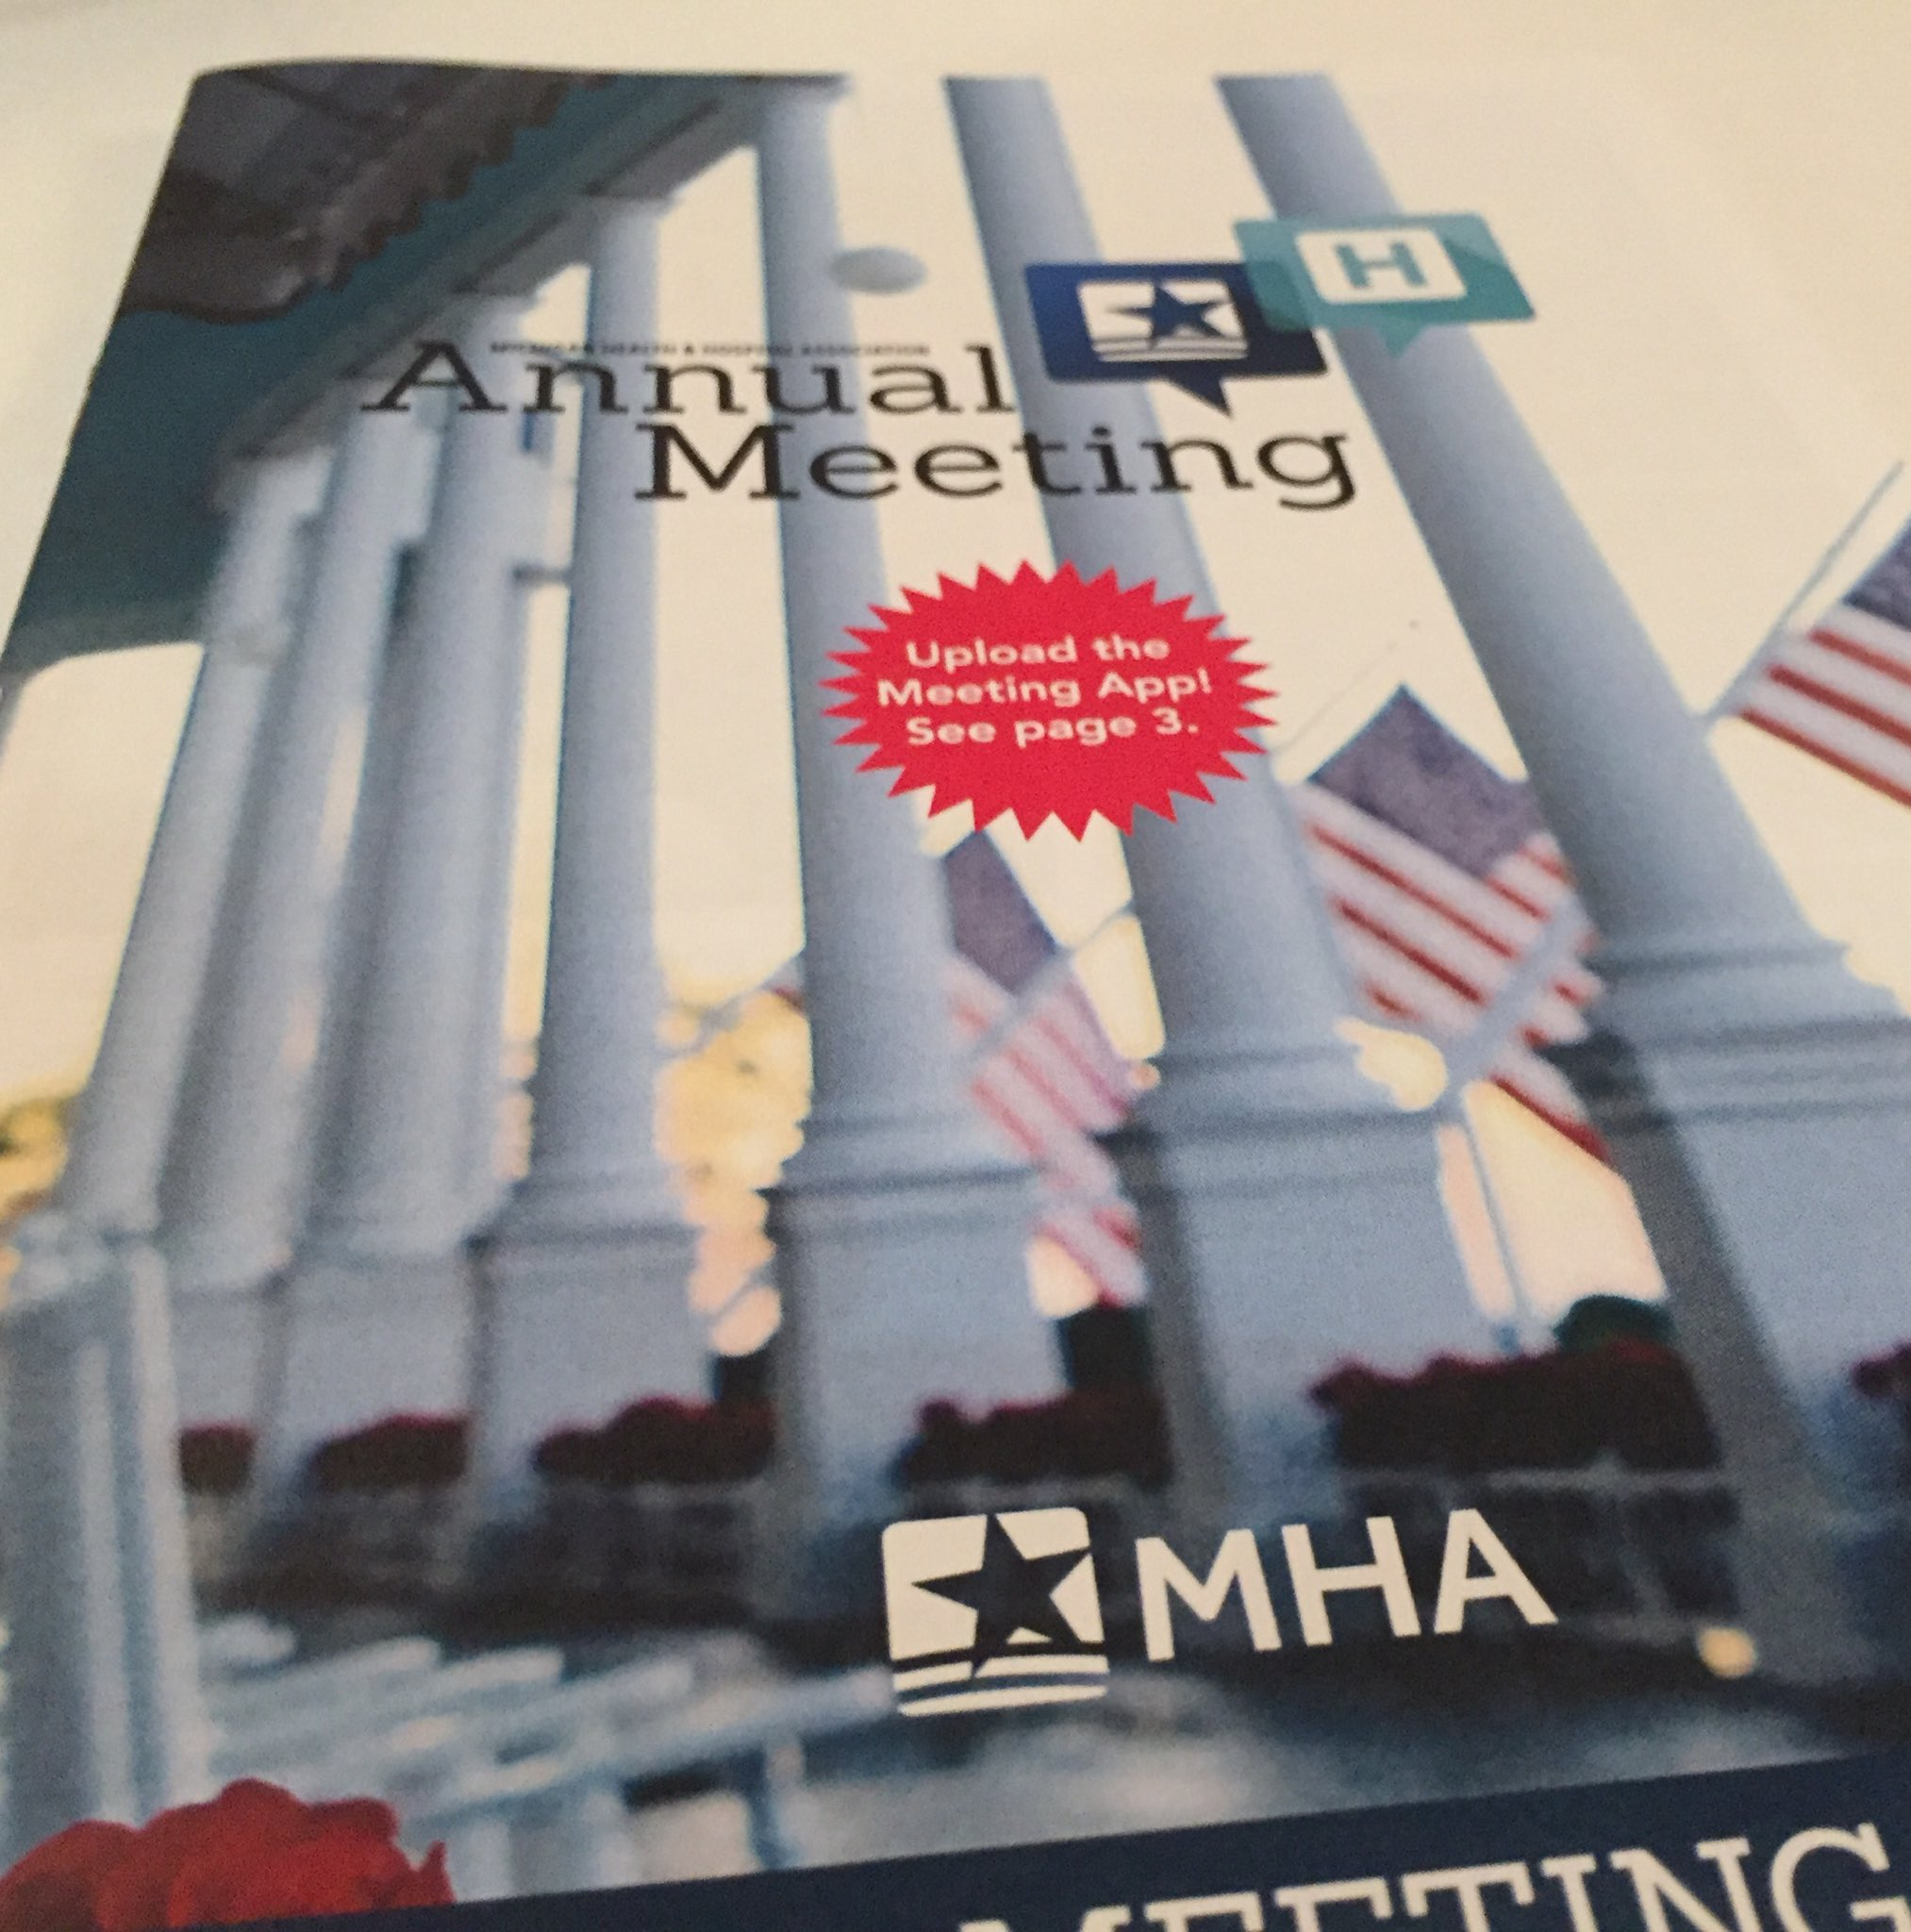 Follow our story on #Instagram (MiHospitalAssoc) for live updates from the #MHAannual Meeting! https://t.co/BO10mhYDMt